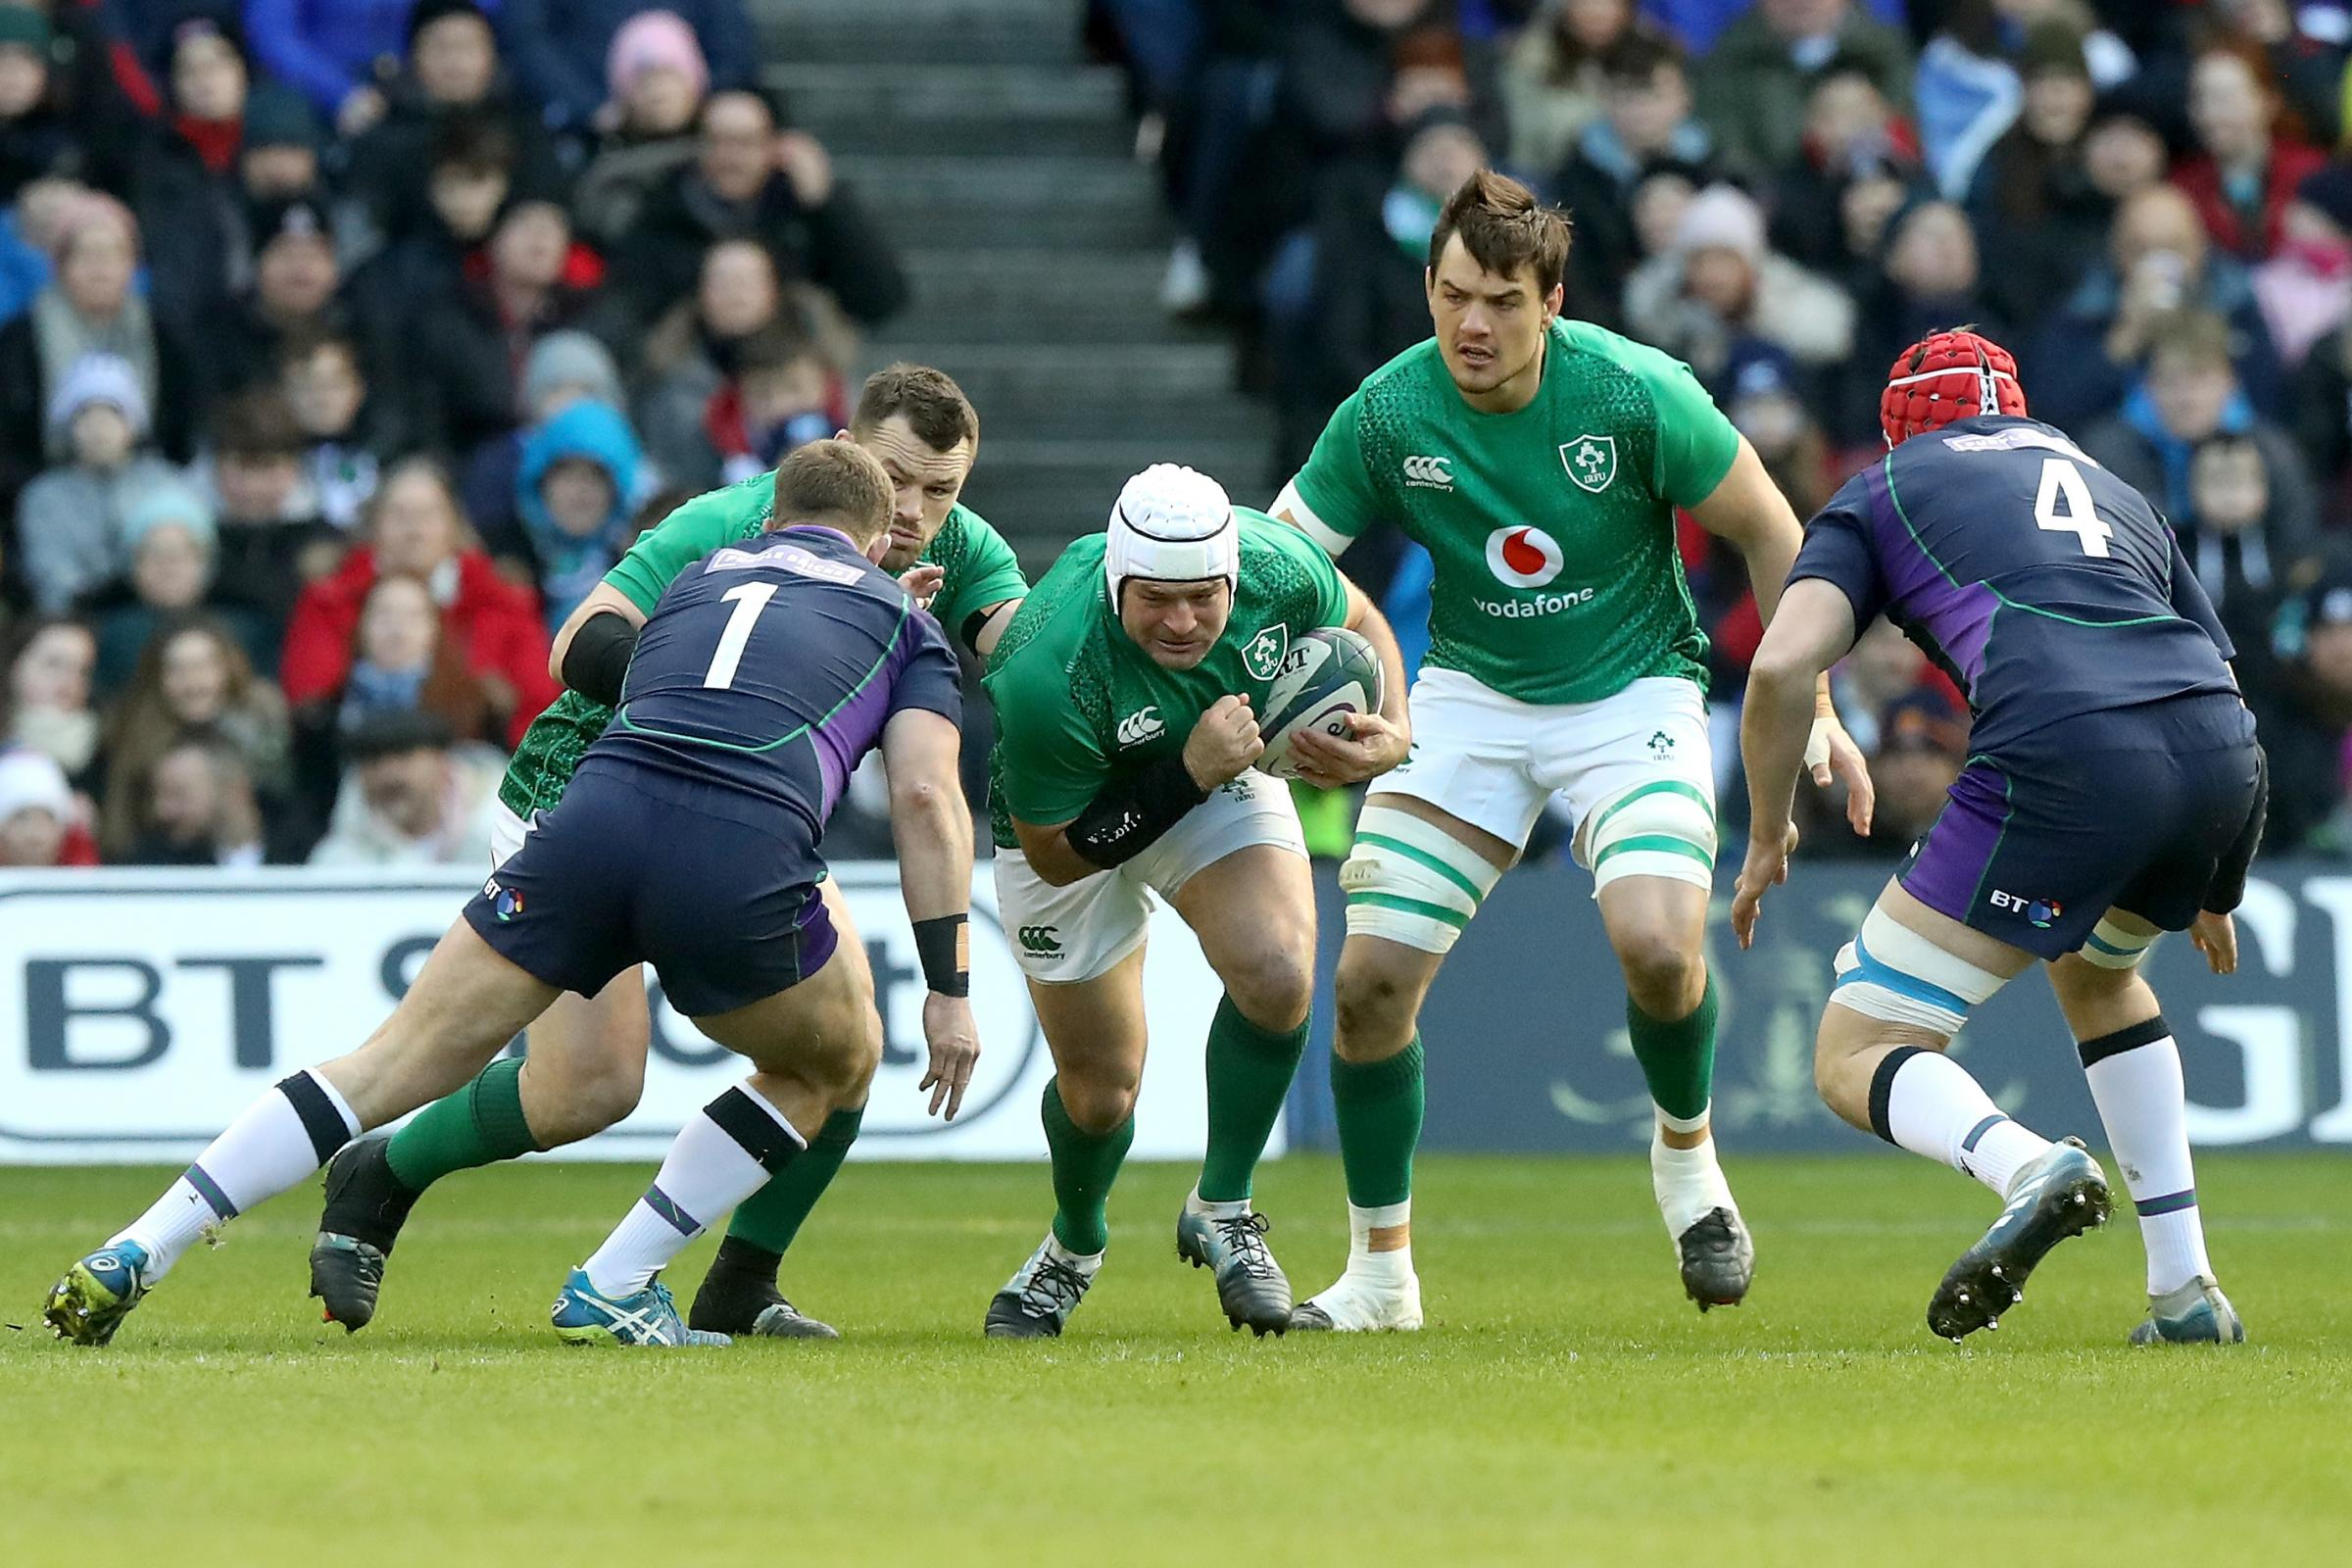 EDINBURGH, SCOTLAND - FEBRUARY 09:  Rory Best of Ireland on the charge during the Guinness Six Nations match between Scotland and Ireland at Murrayfield on February 9, 2019 in Edinburgh, Scotland.  (Photo by David Rogers/Getty Images).